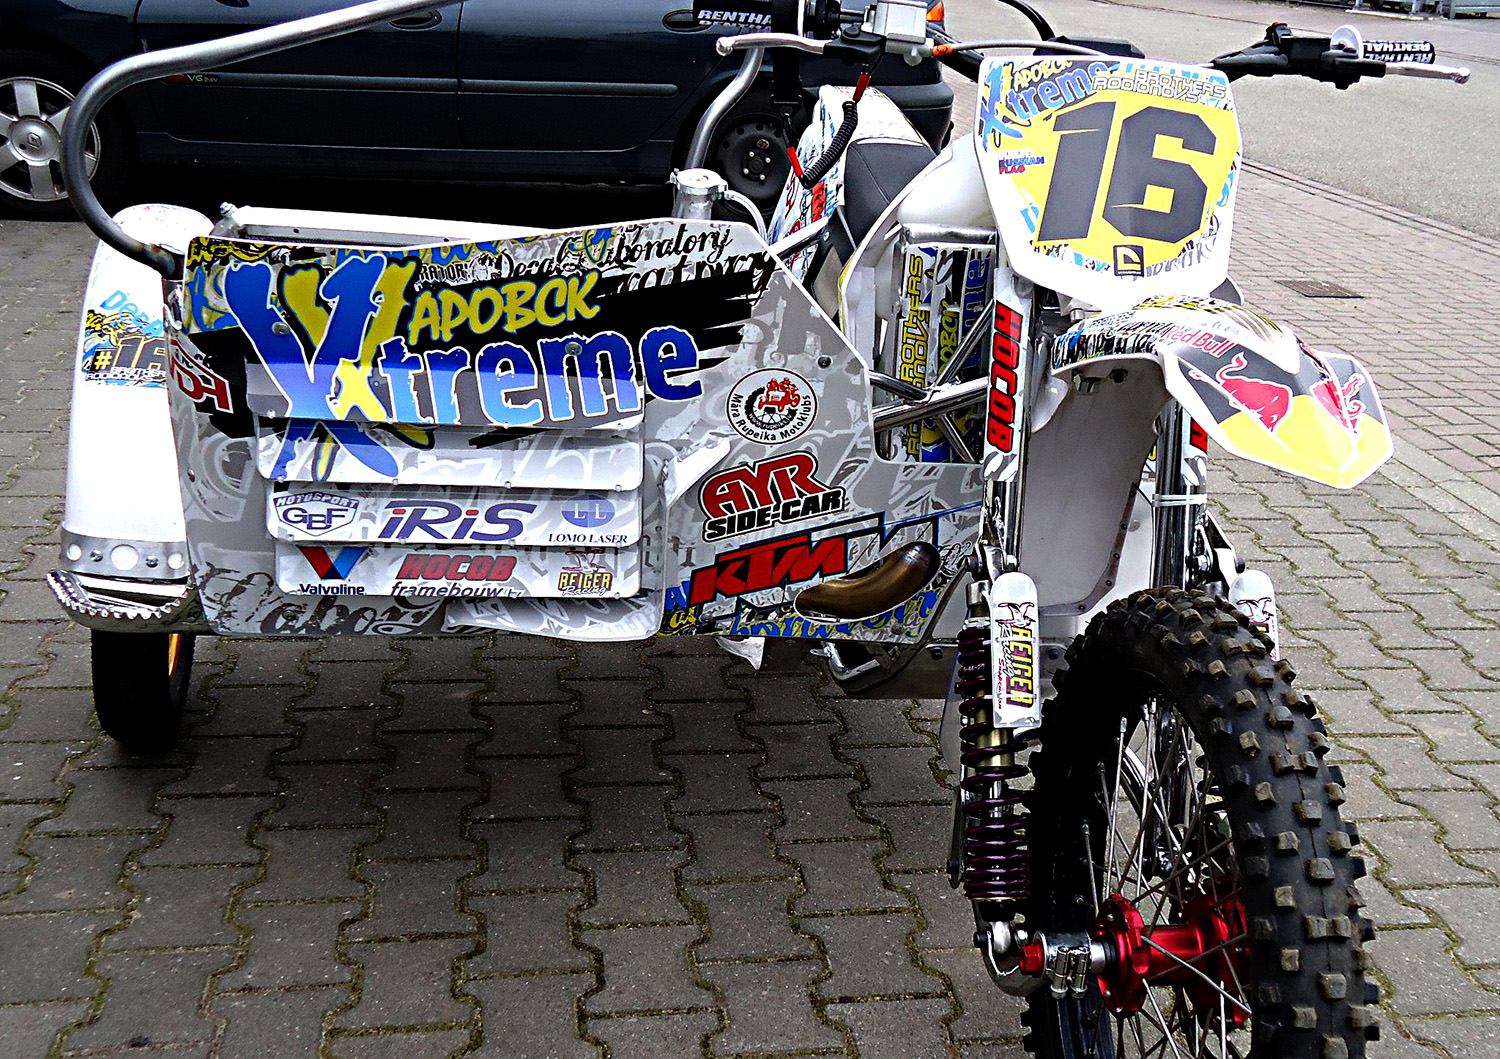 pictures of dirt bikes from decallab custom mx graphics worldwide